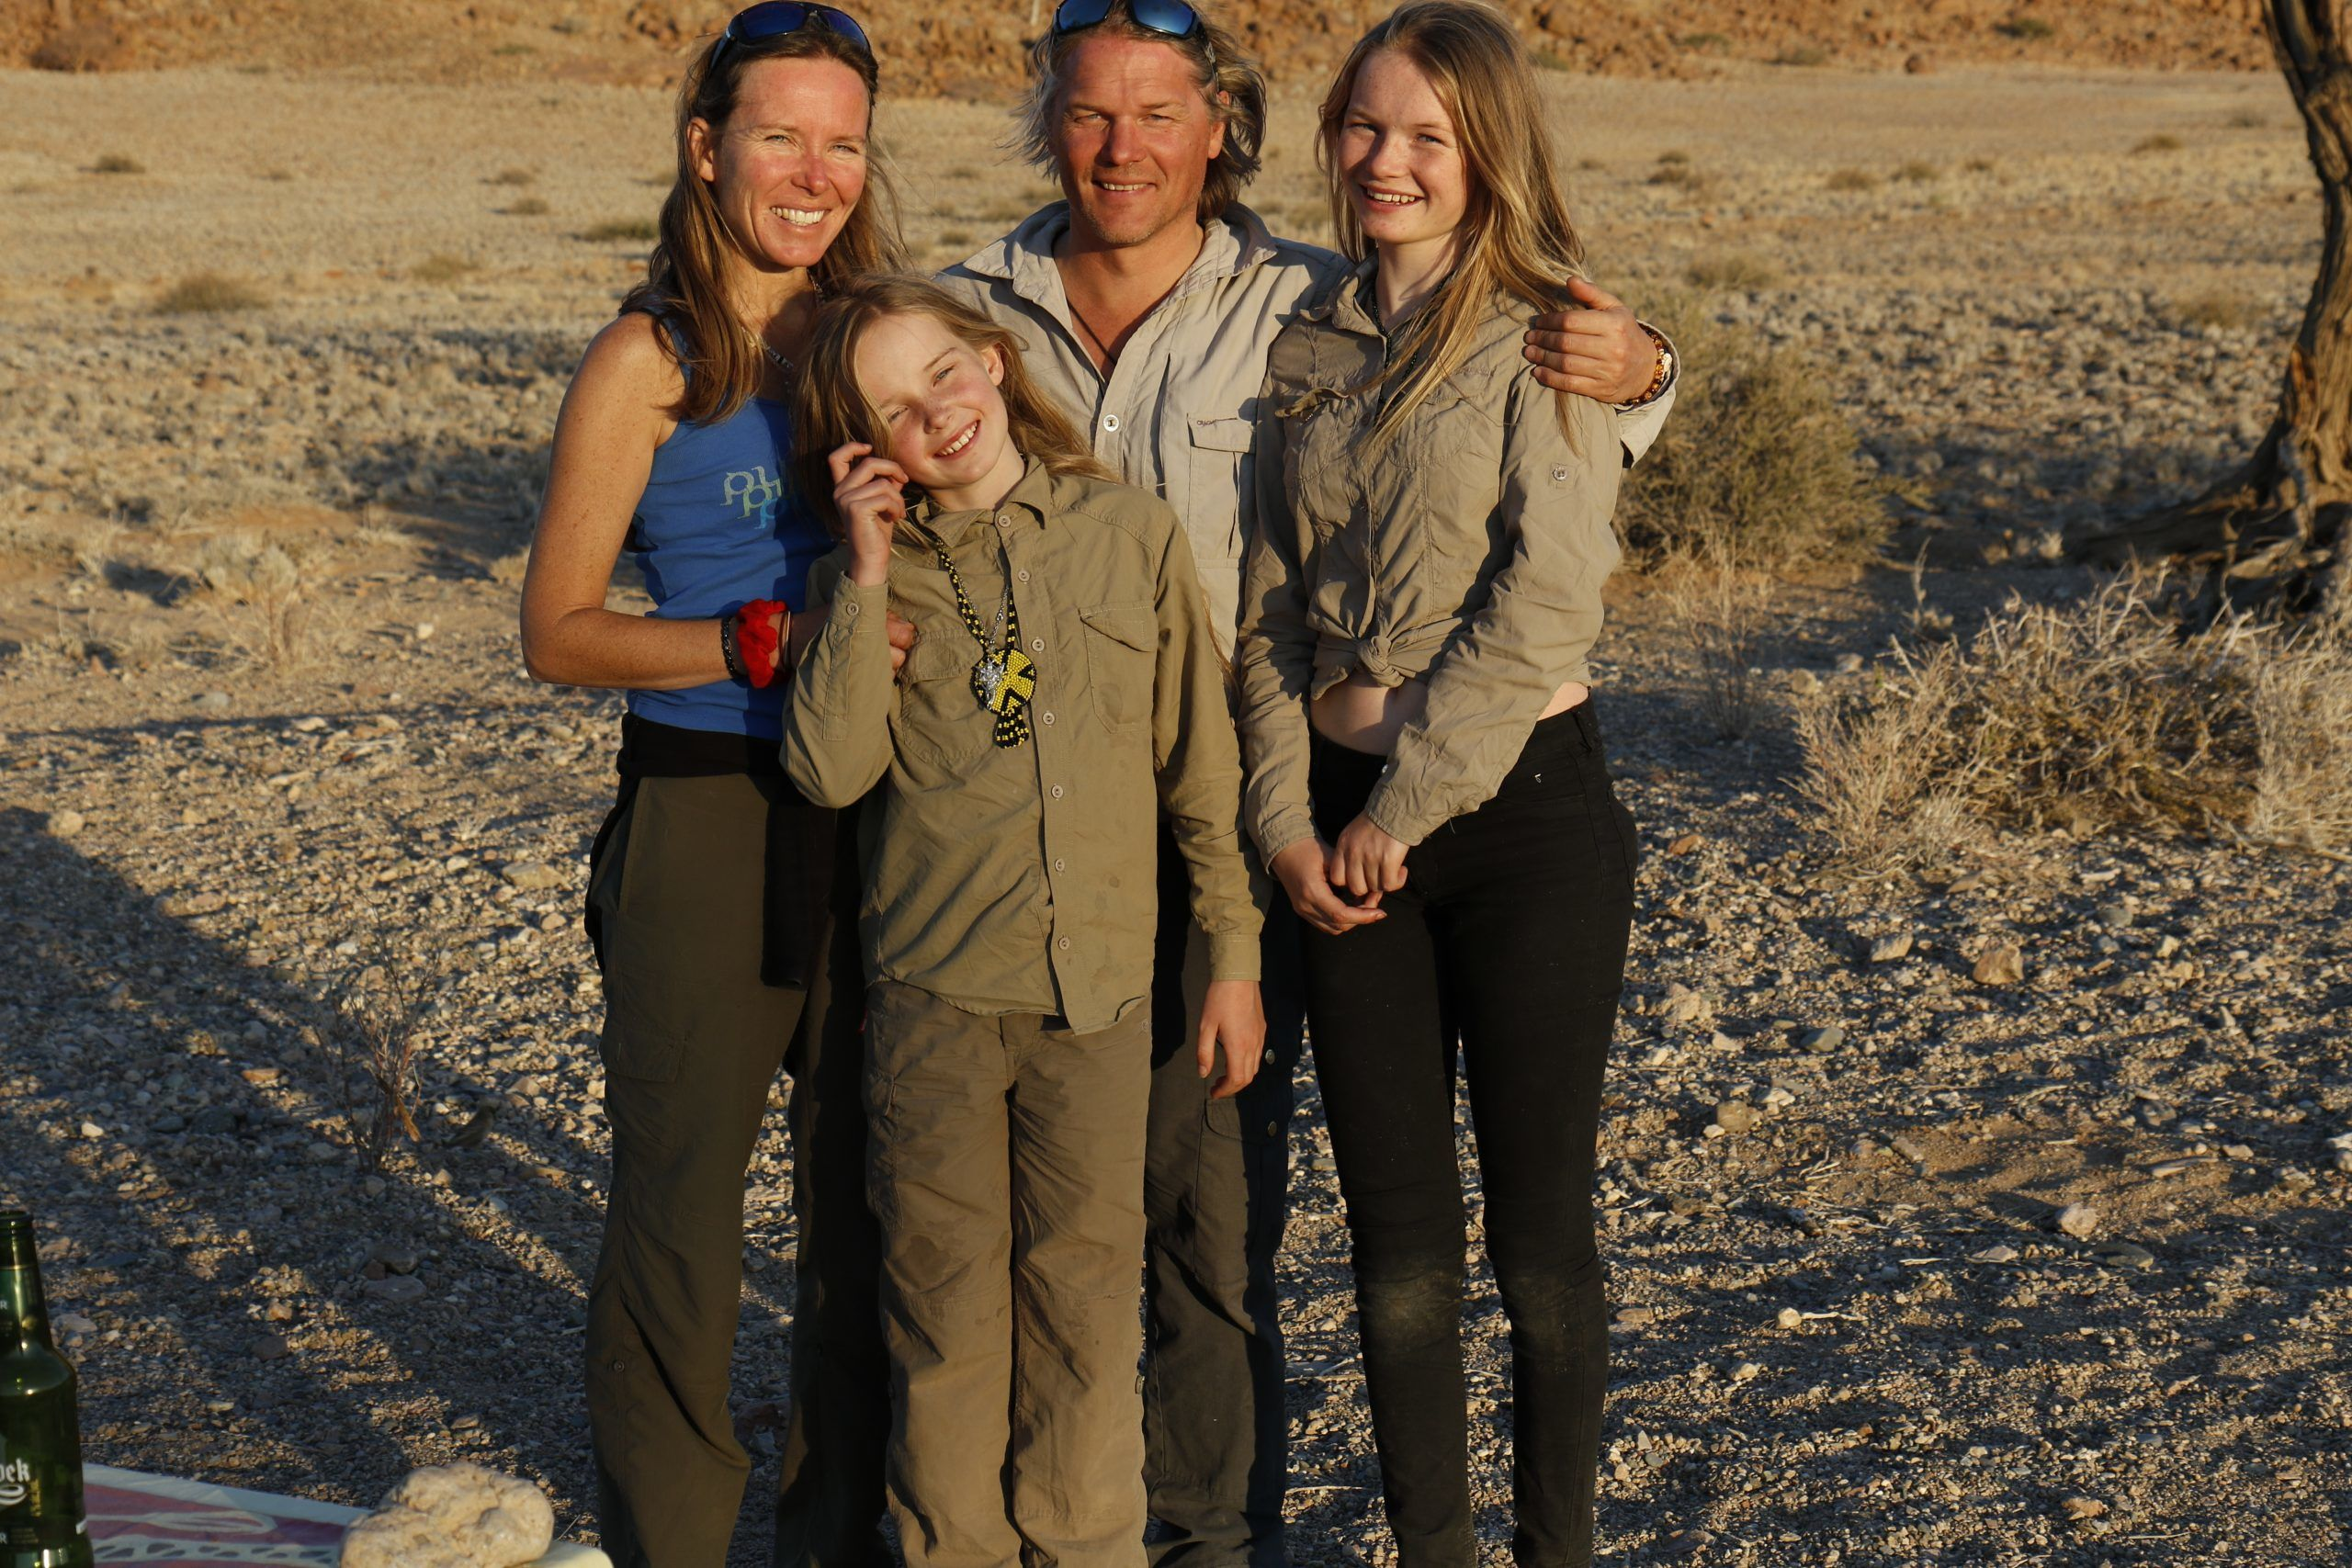 Volunteer abroad with your family in Africa